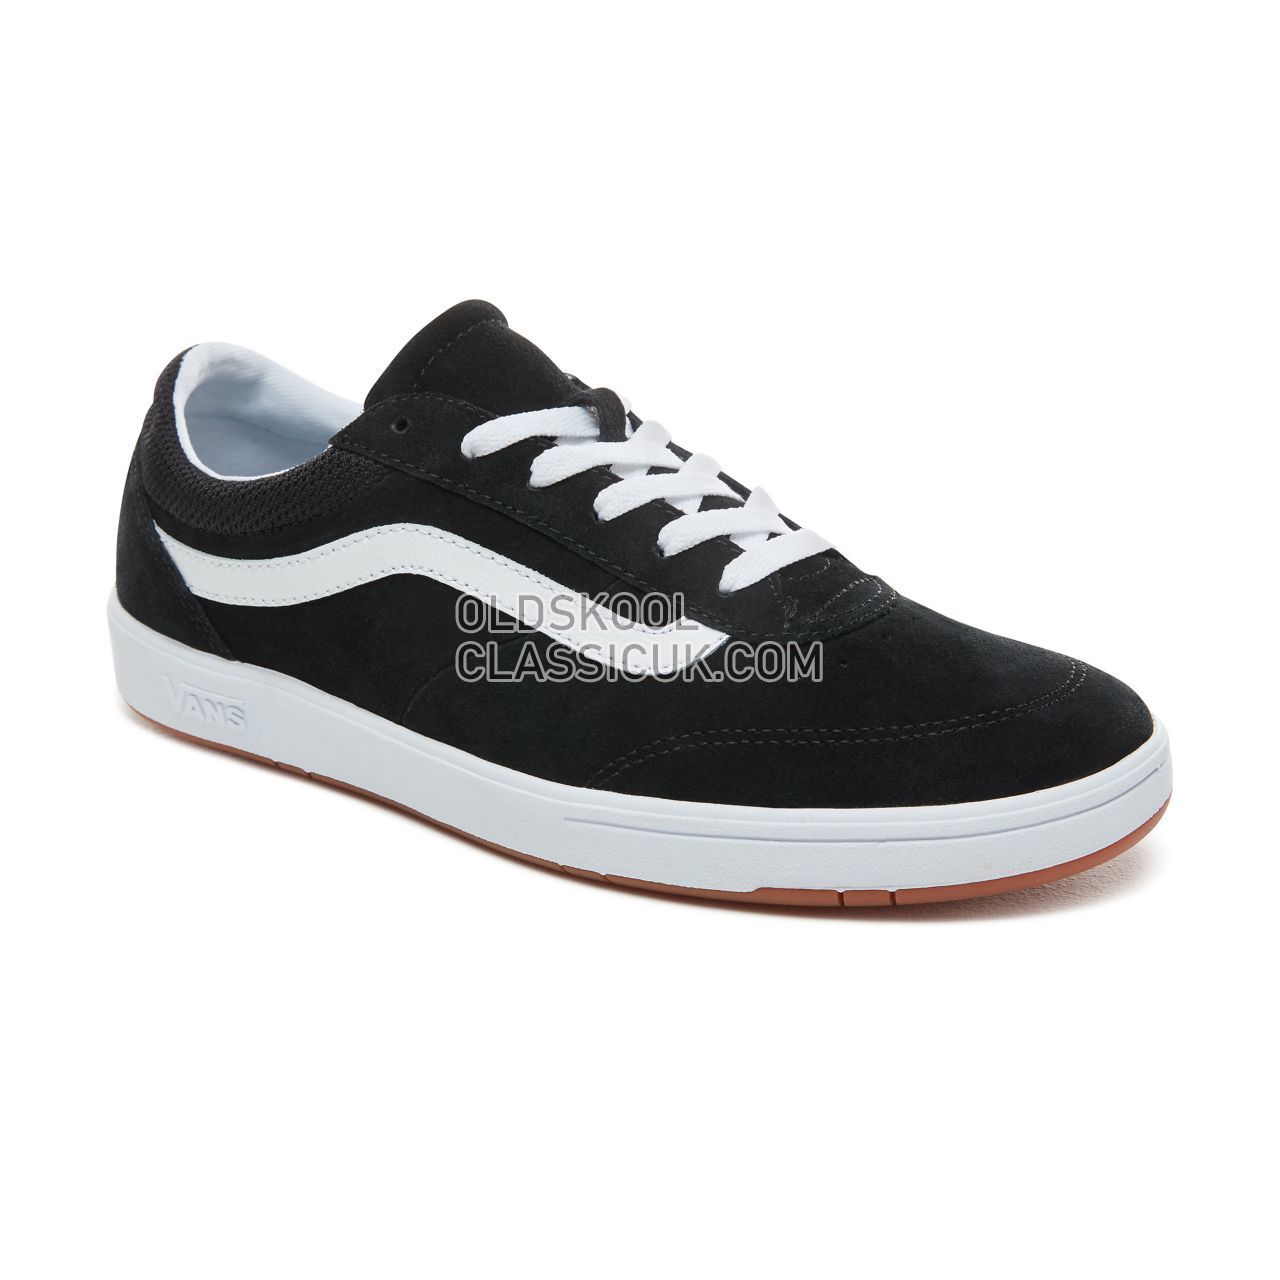 aa1772ec73f80 ... Vans Staple Ultracush Cruze Sneakers Mens (Staple) Black/True White  VN0A3WLZOS7 Shoes ...